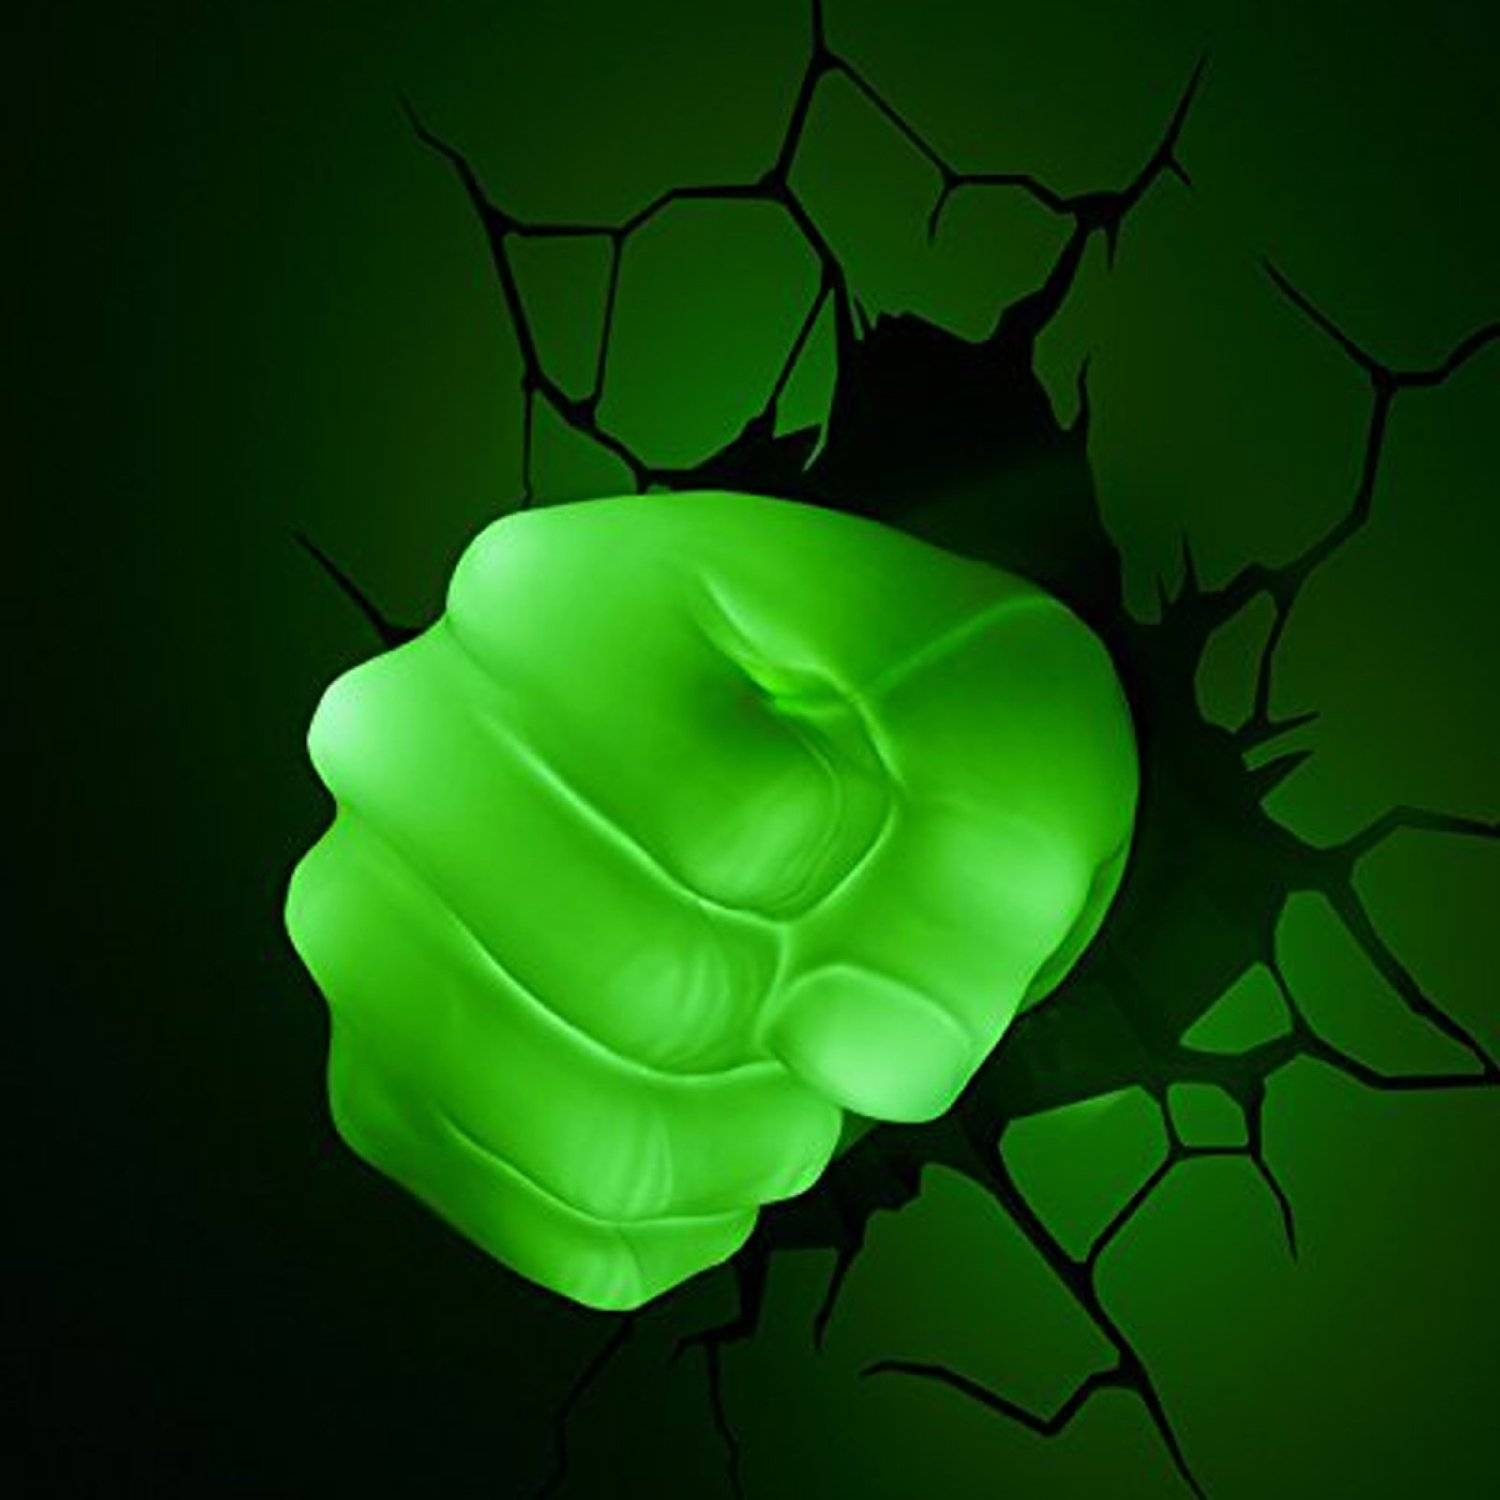 The Avengers 3d Wall Art Nightlight – Hulk Hand | This Stuff Online Within Most Recent 3d Wall Art Night Light Spiderman Hand (View 13 of 20)